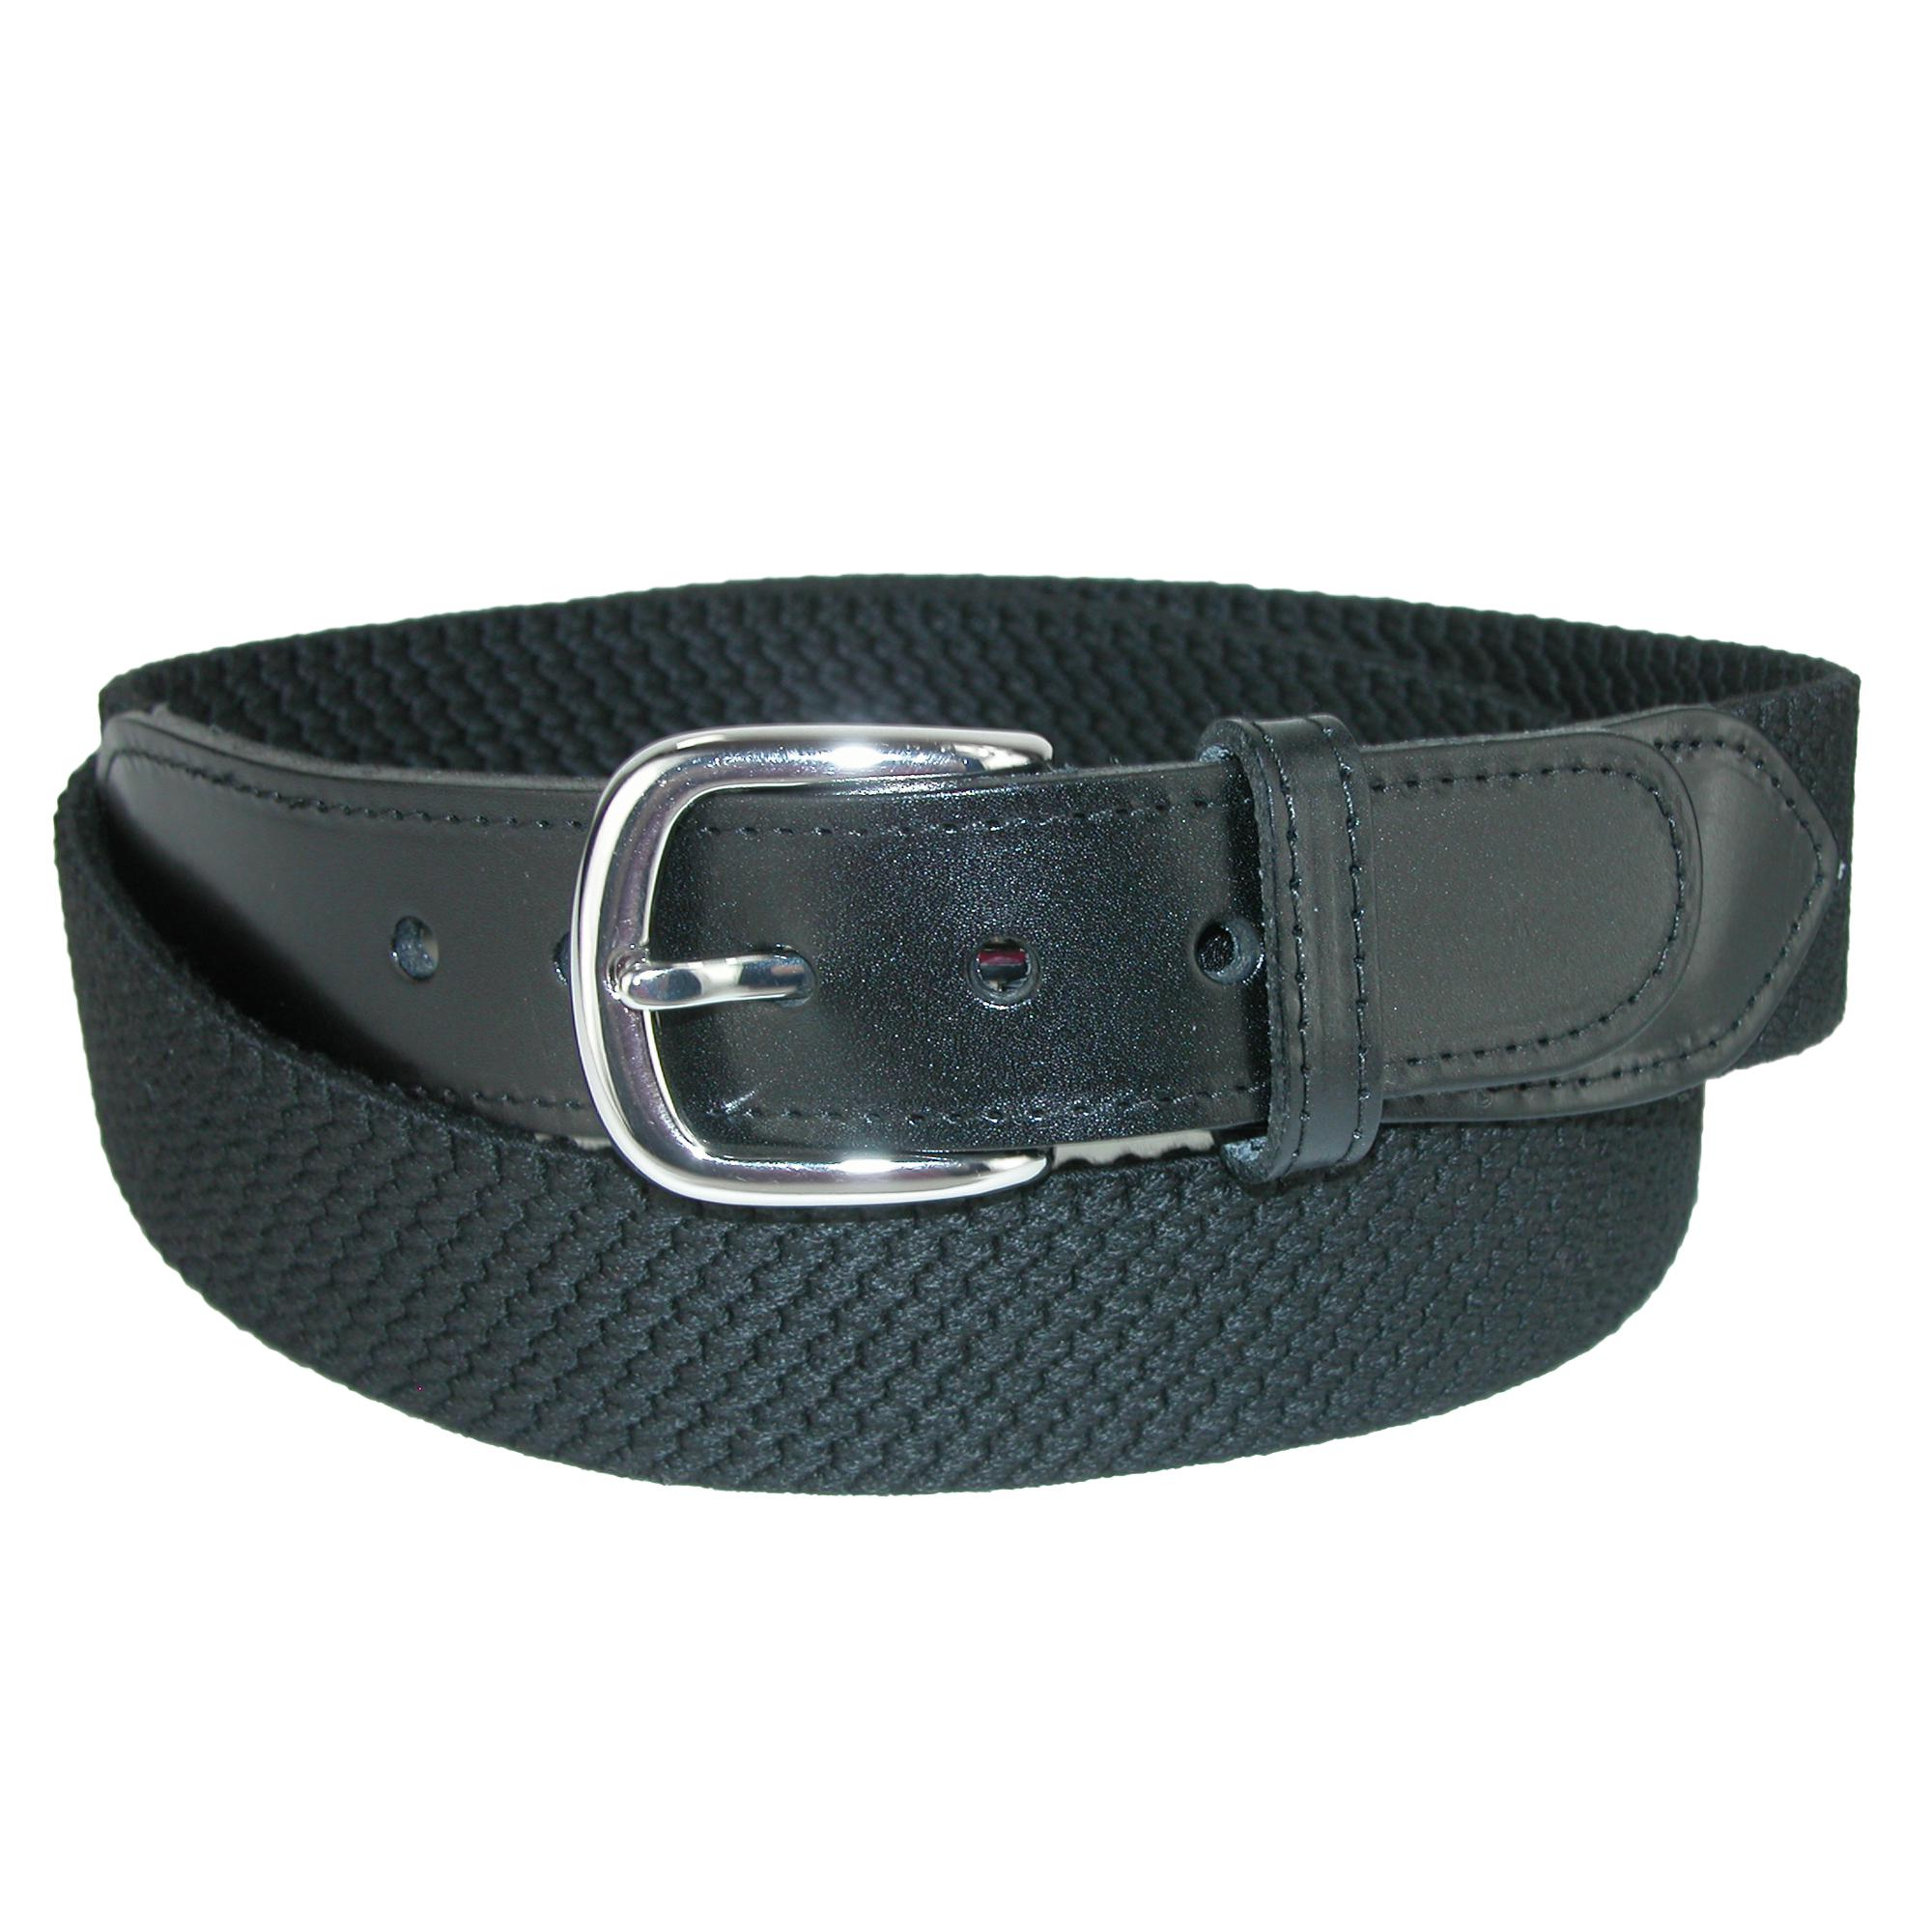 Landes Men's Elastic Web Belt With Leather Tabs